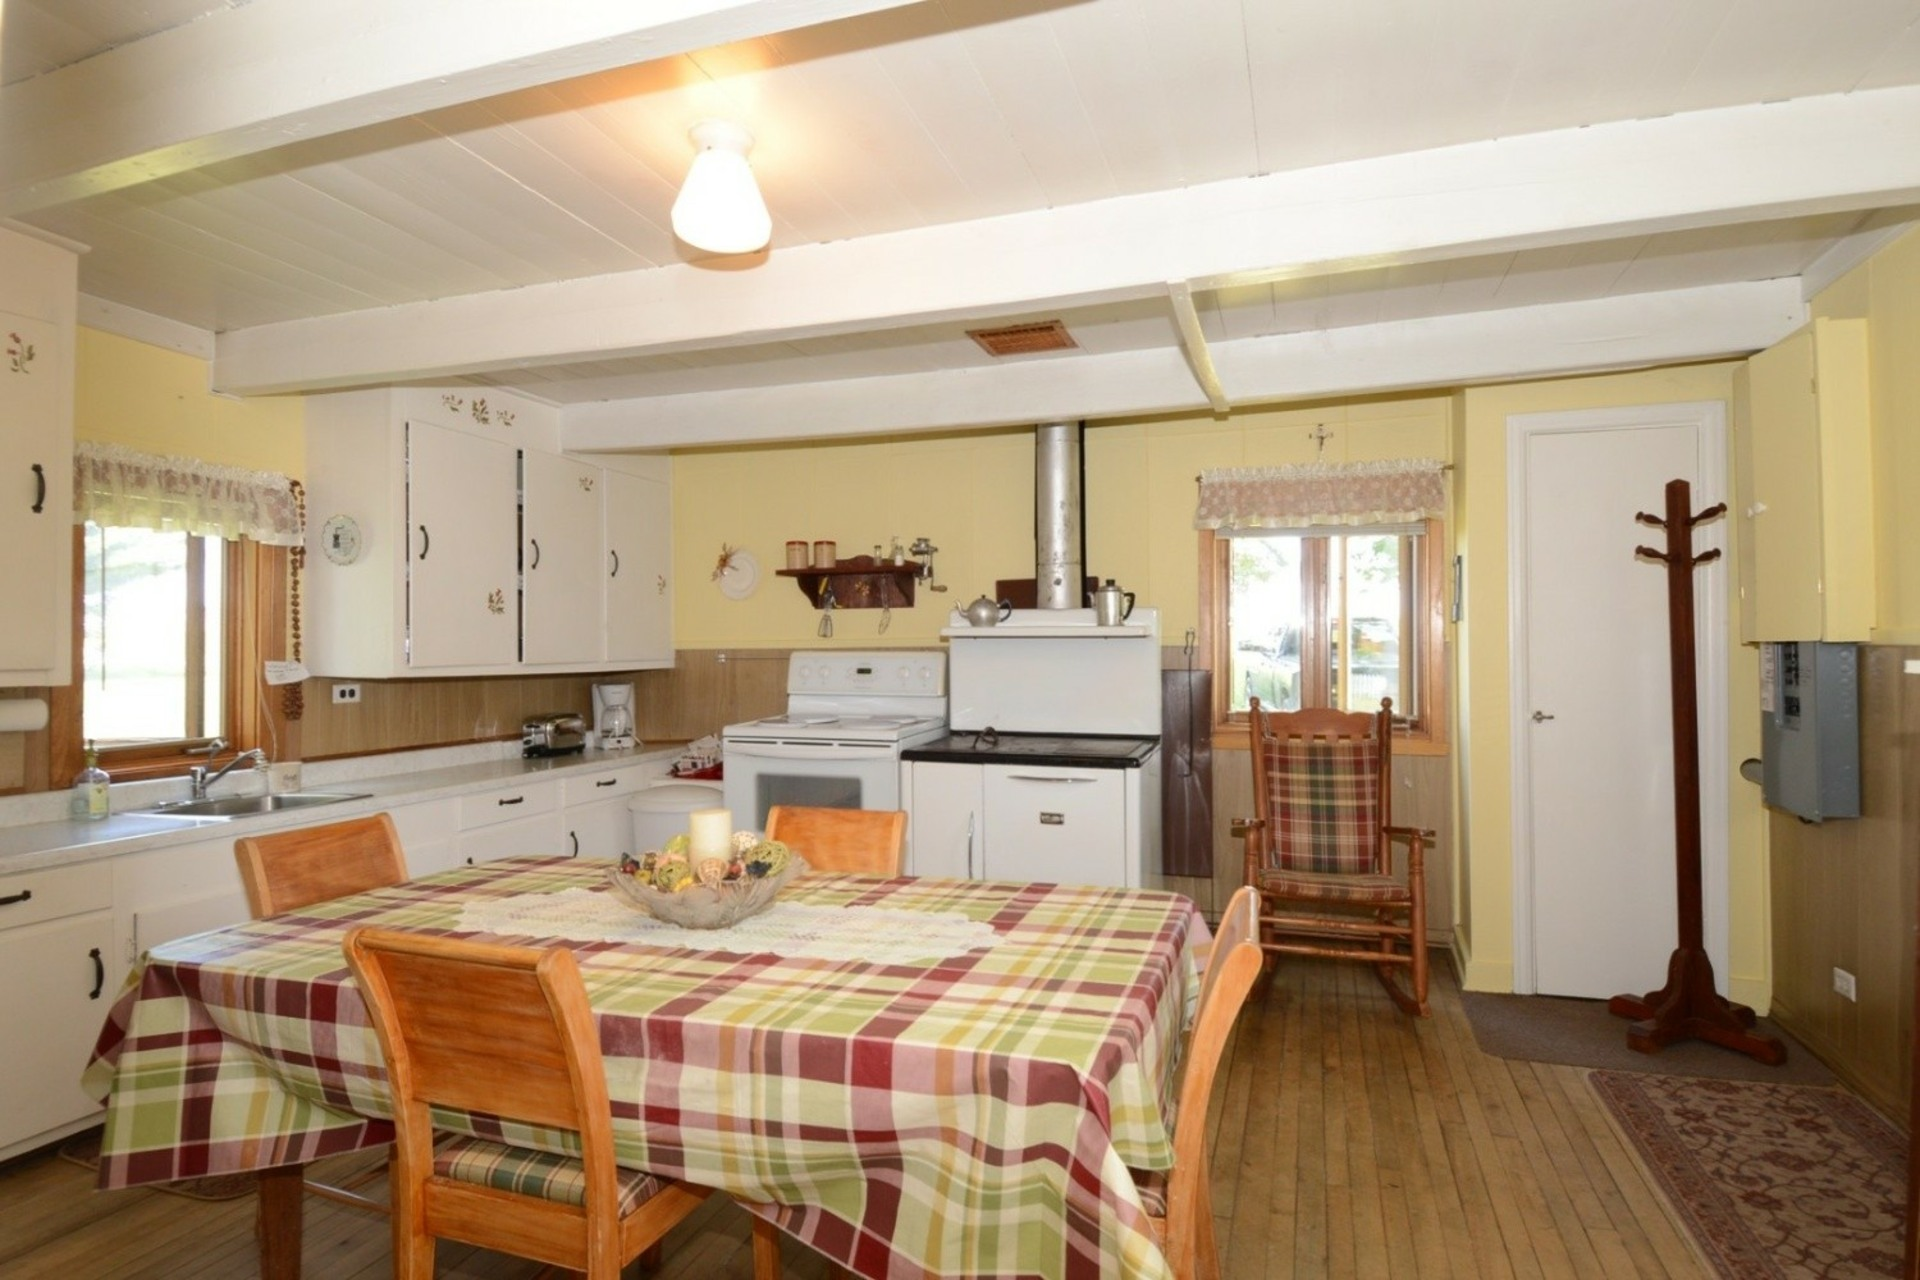 image 10 - Farmhouse For sale Rigaud - 8 rooms